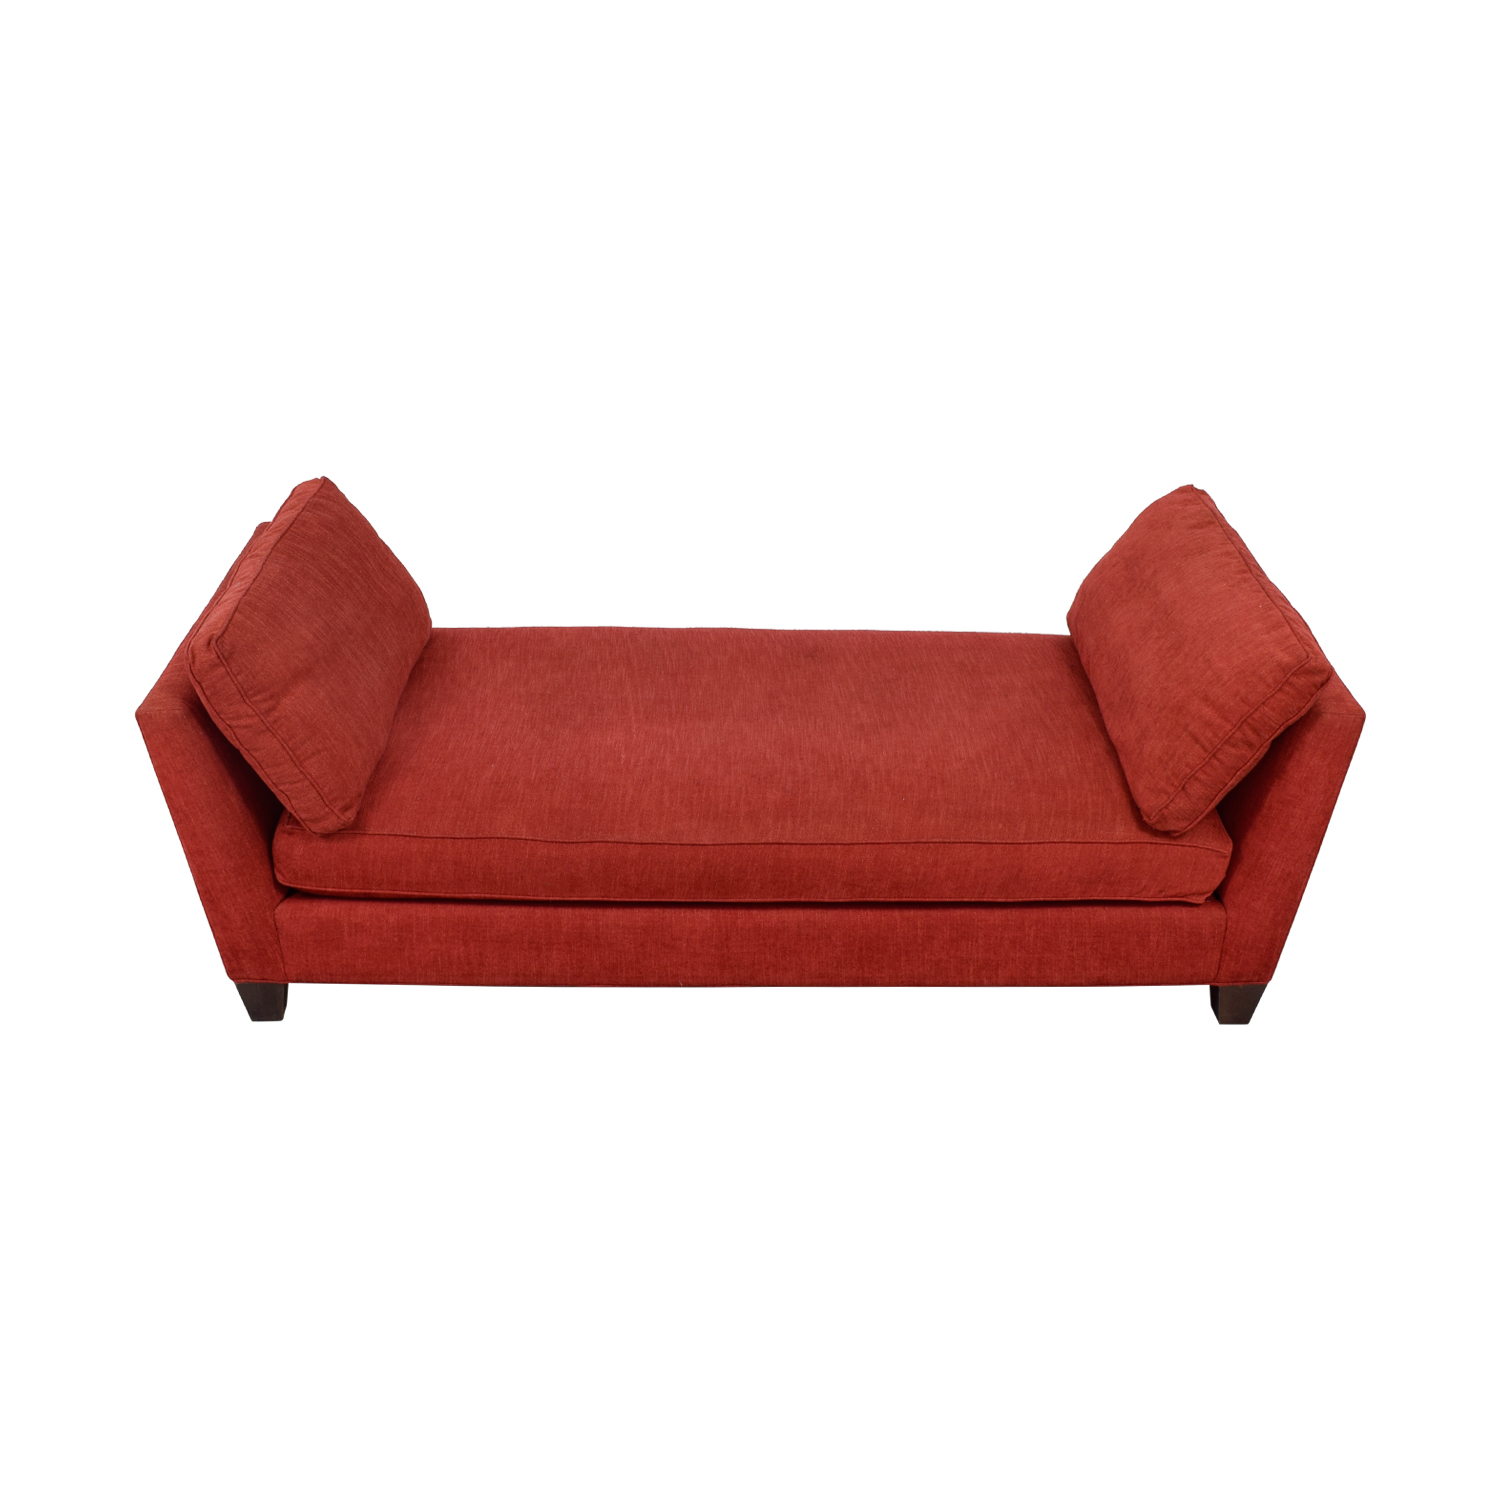 Crate & Barrel Crate & Barrel Marlowe Red Chaise second hand